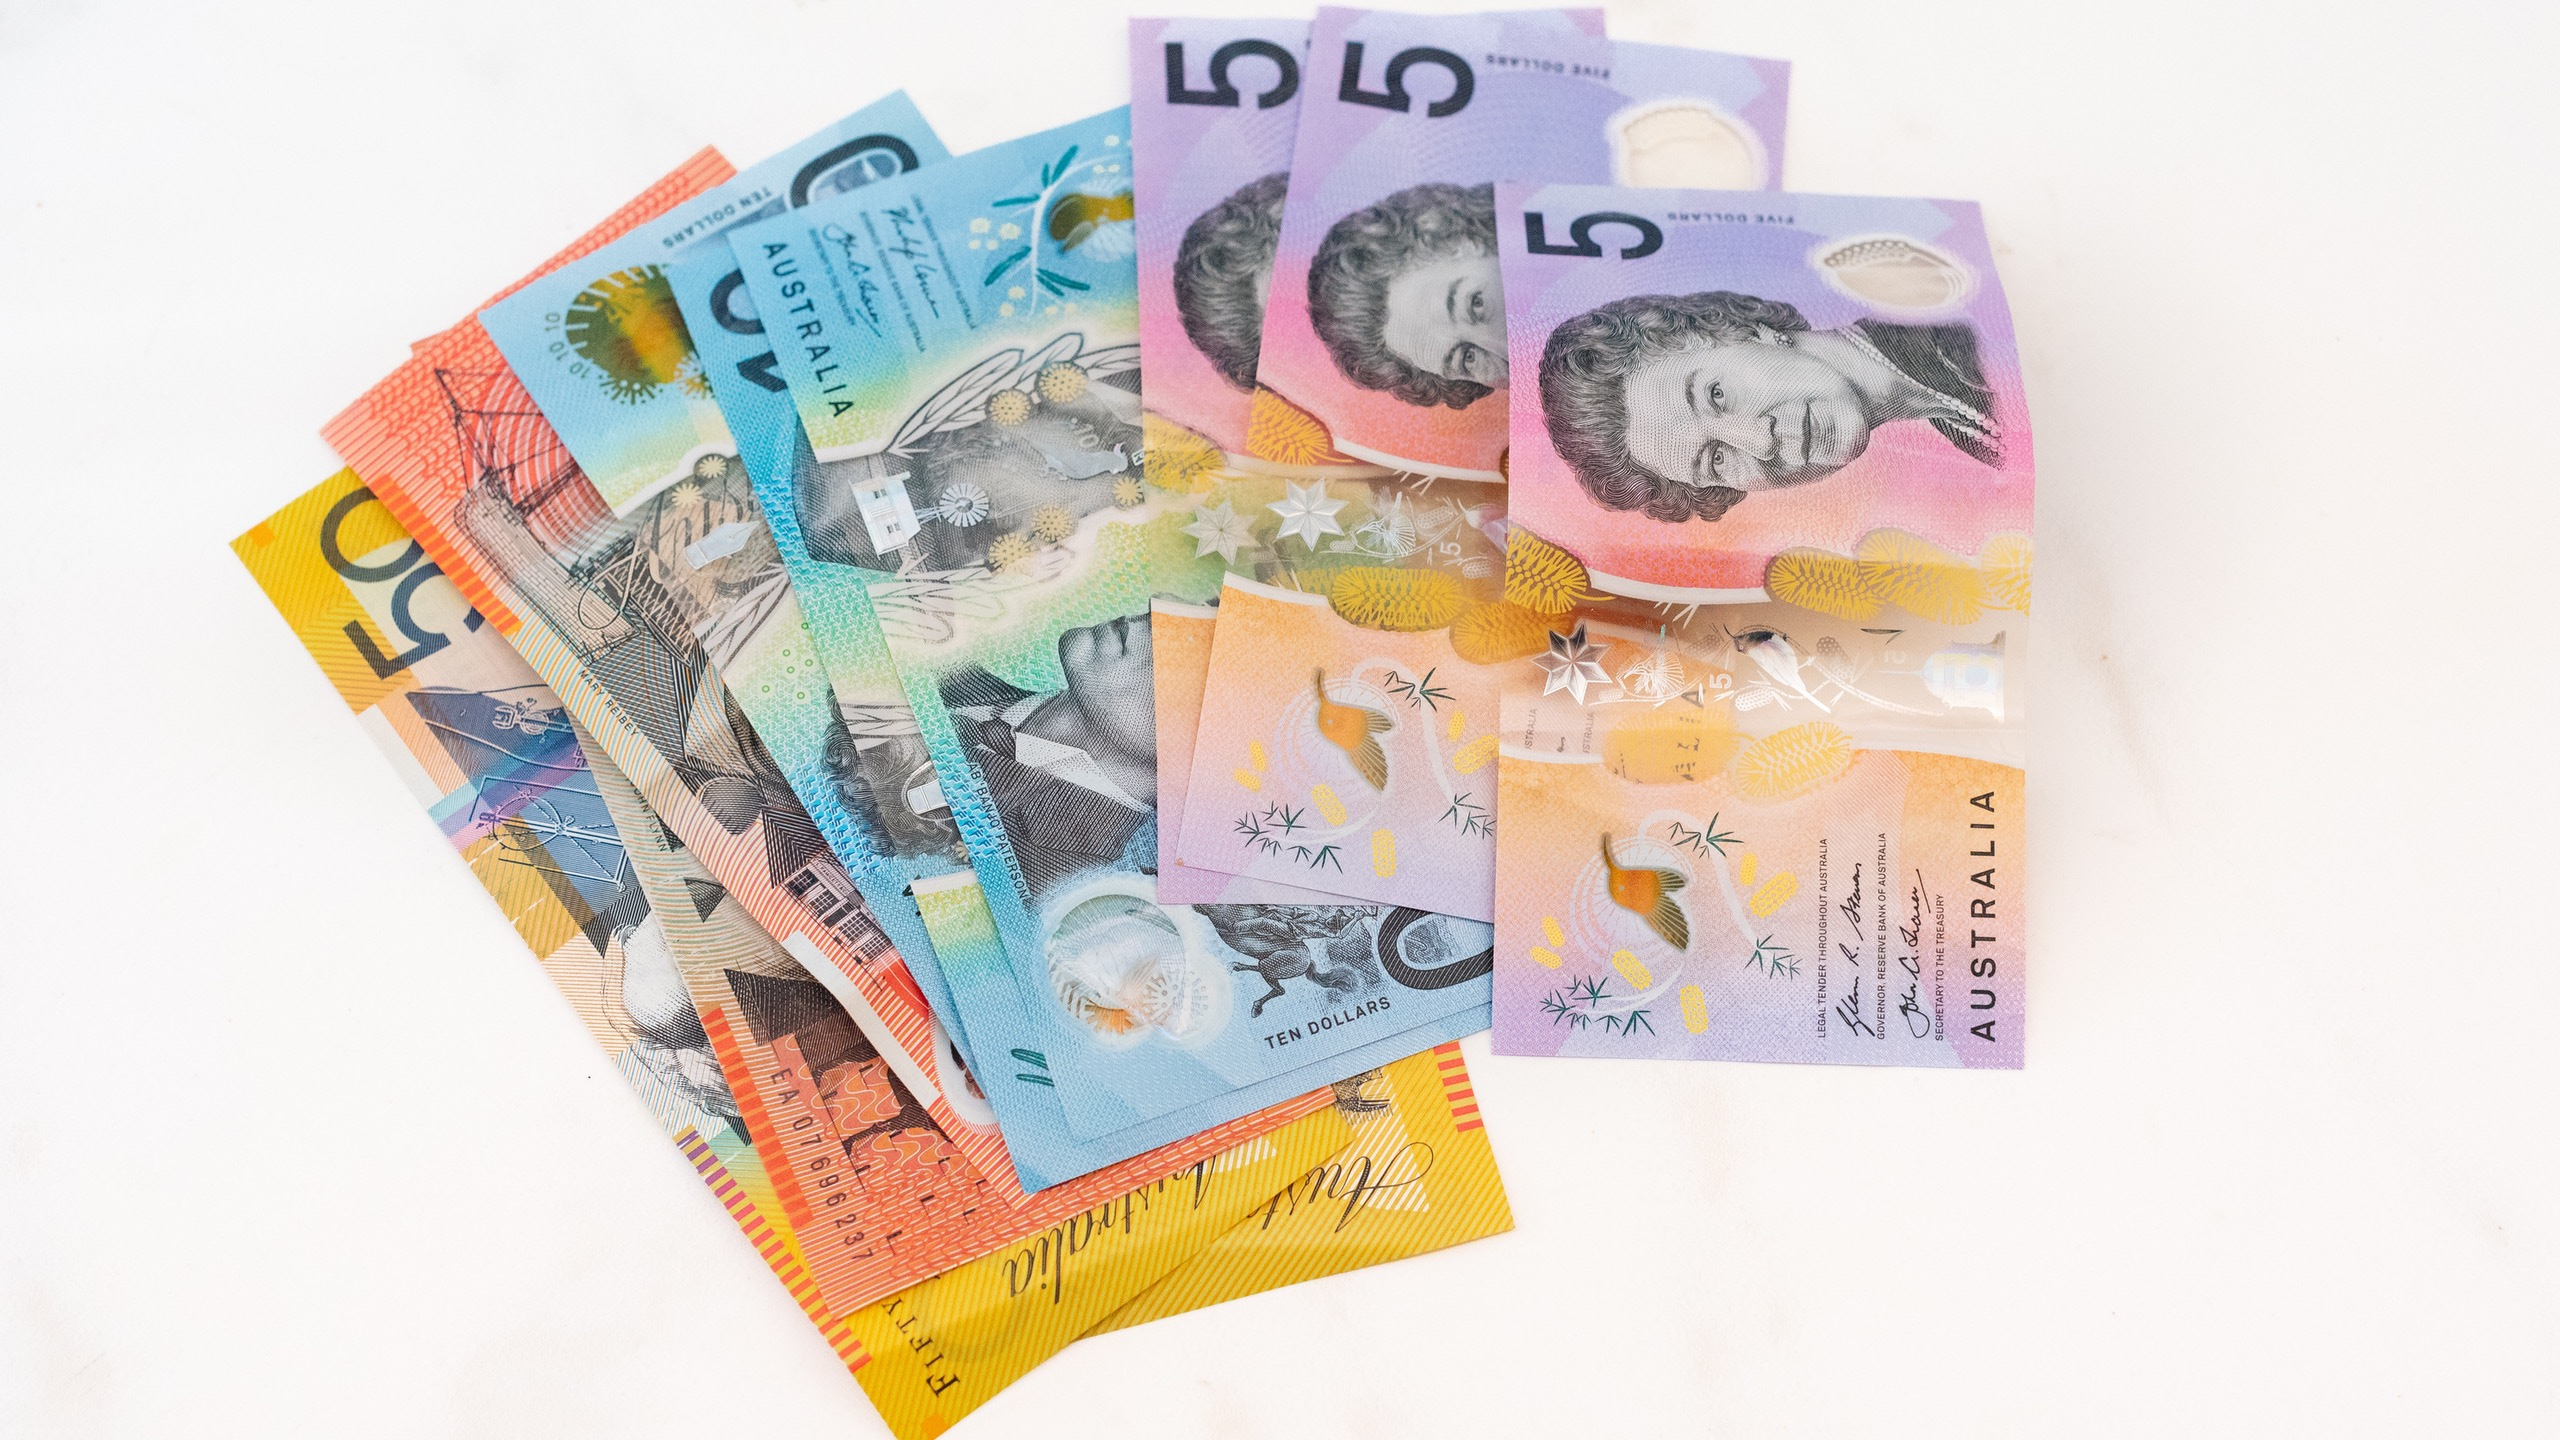 Assortment of Australian bank notes on a white table